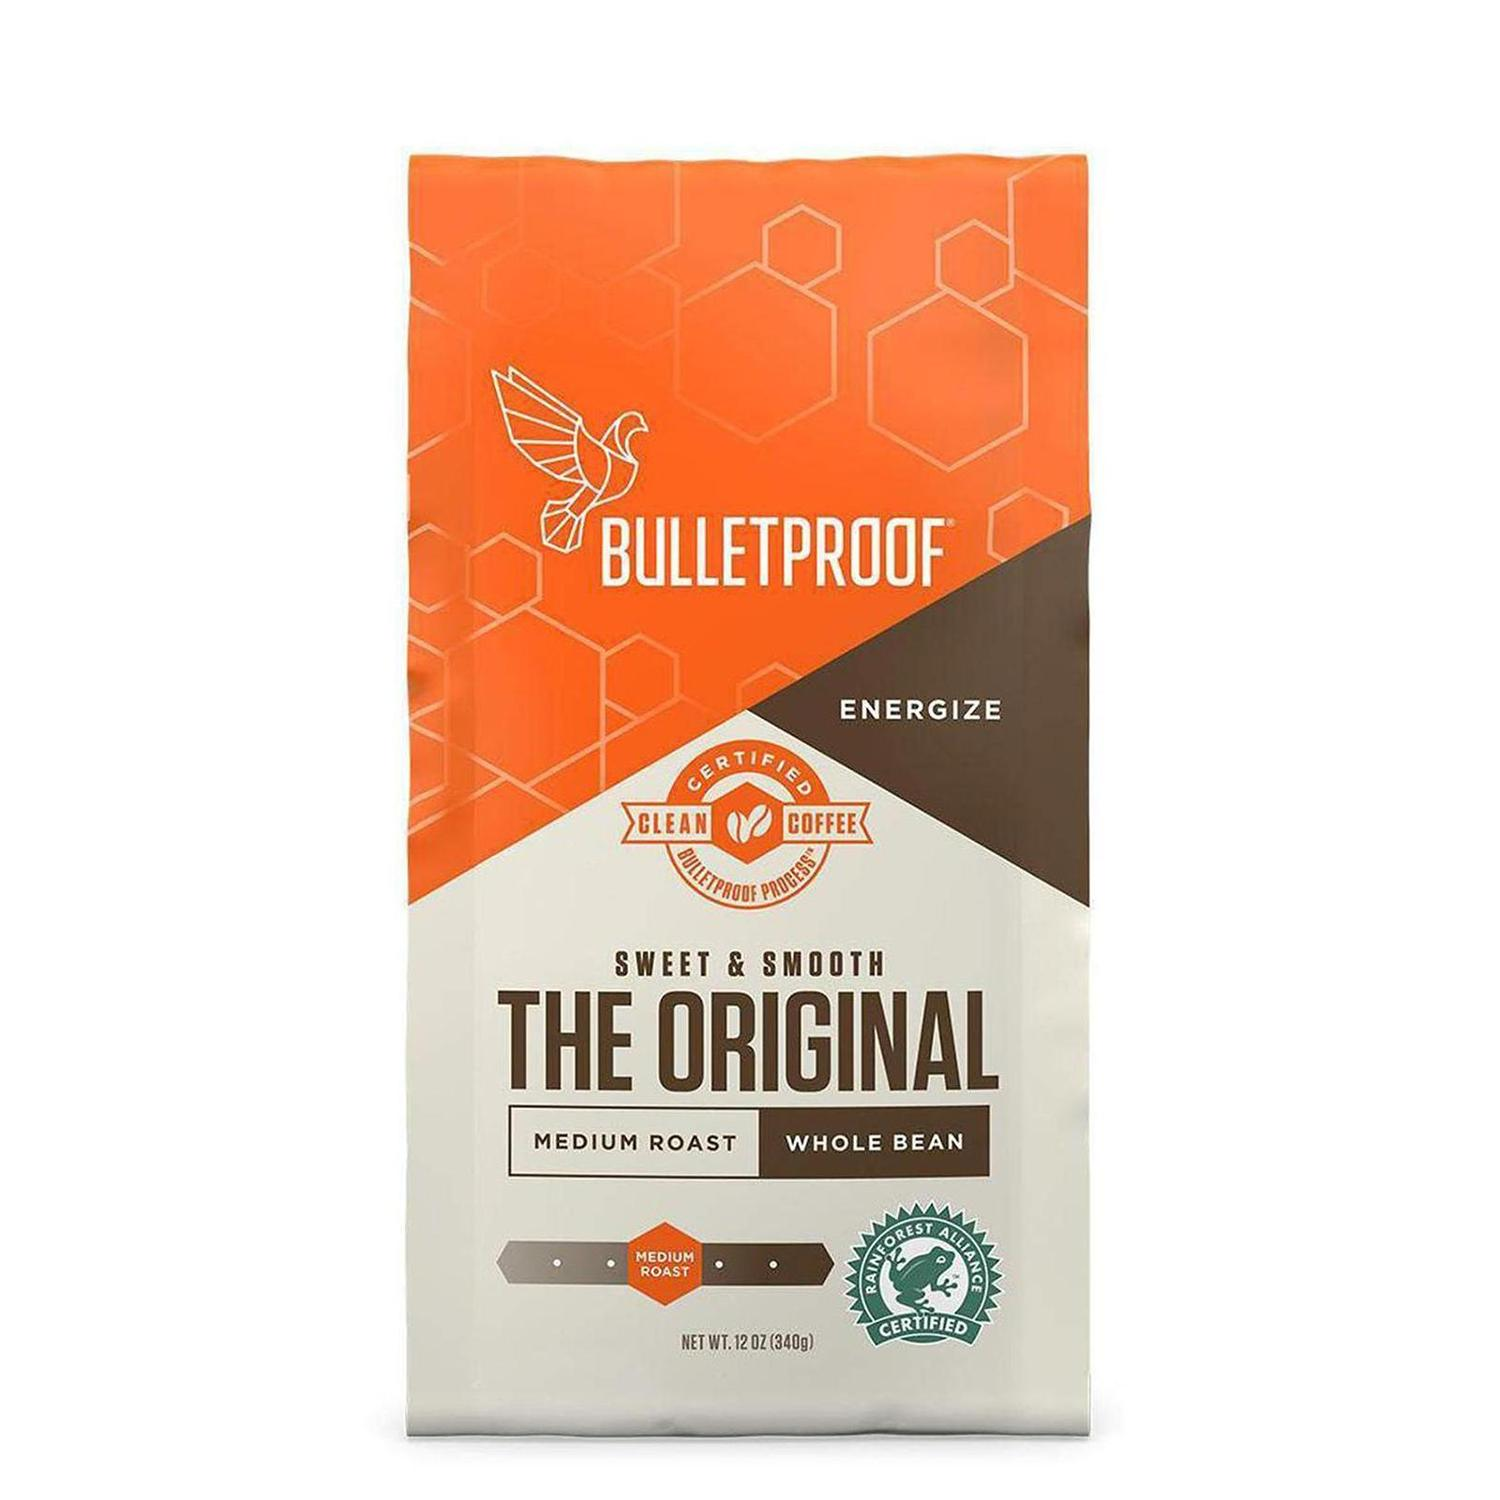 Coffee The Original - Medium Roast Whole Bean Coffee is a great keto product in our opinion.